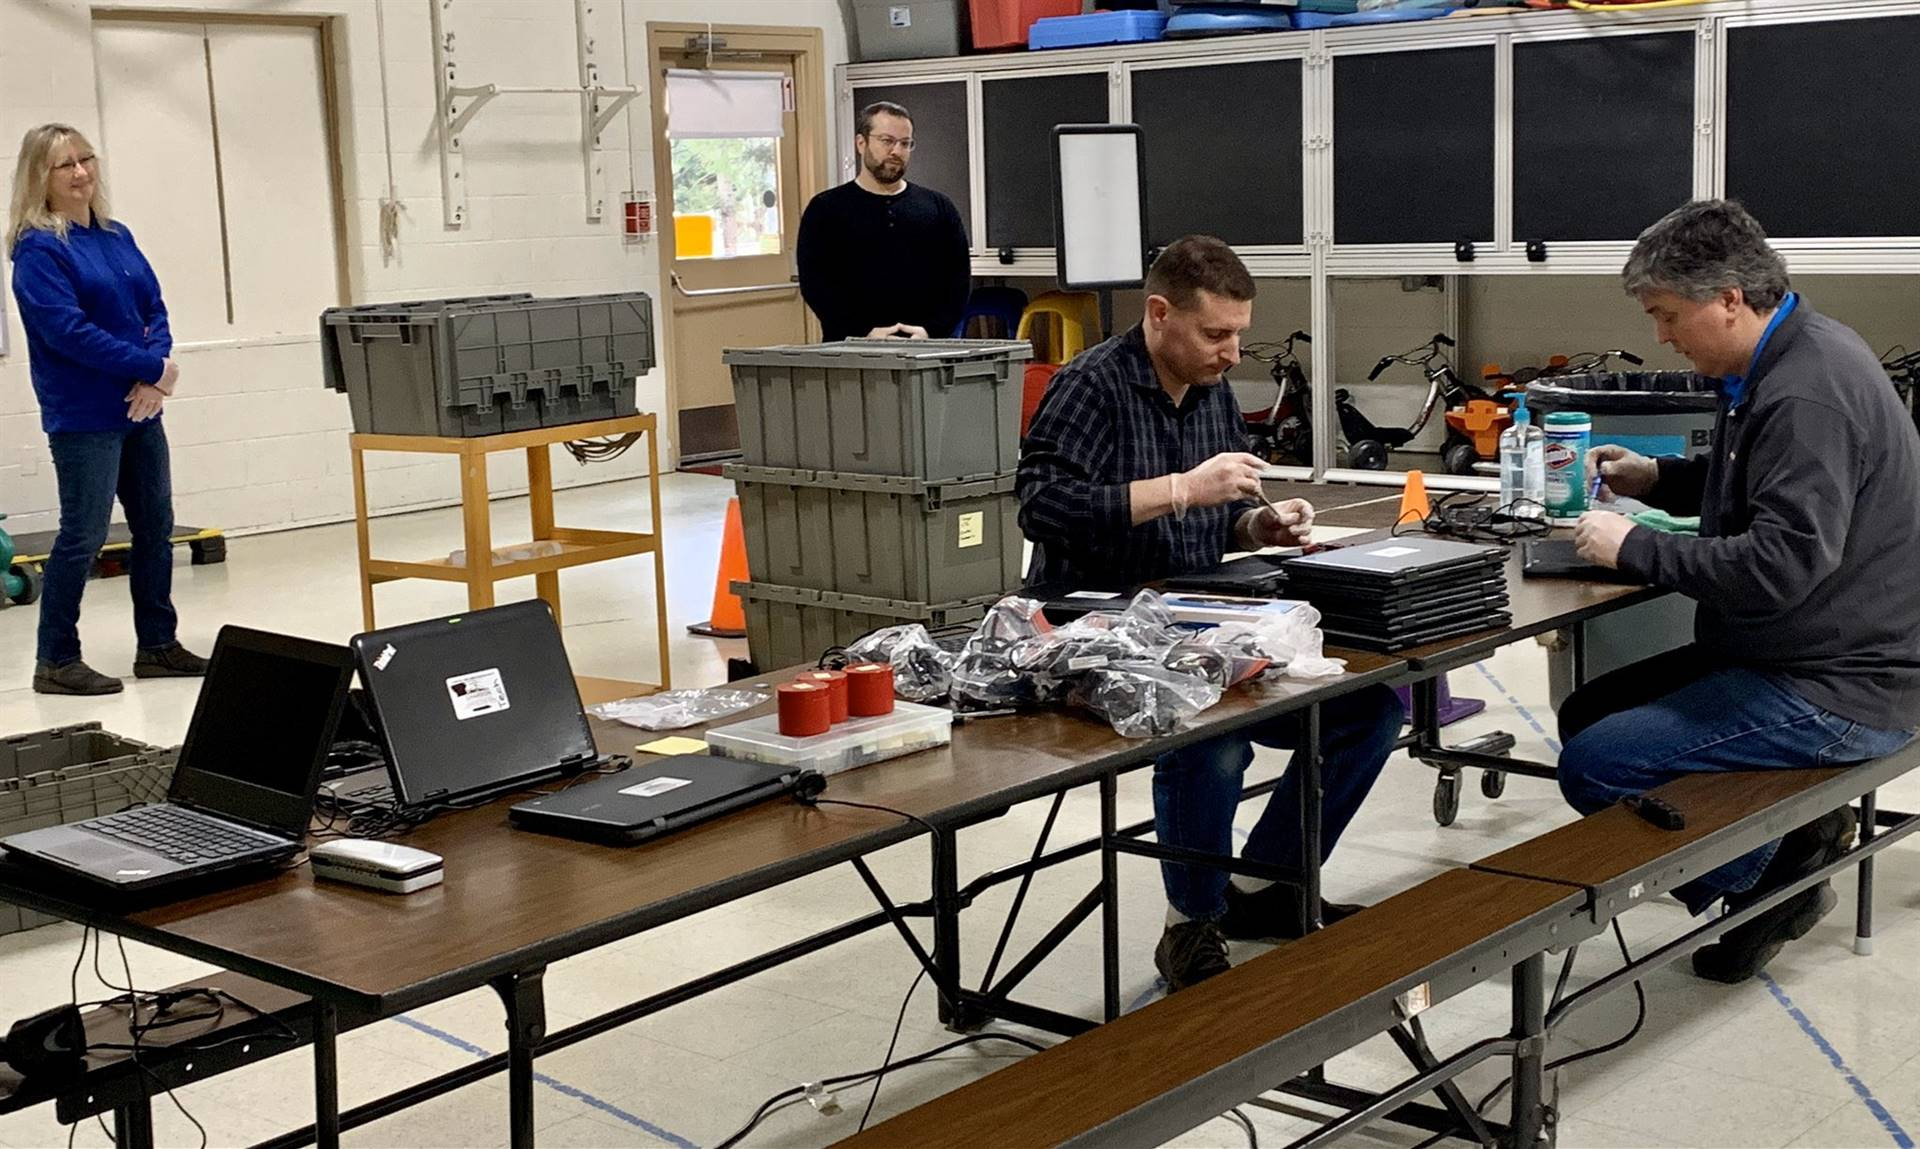 Business Affairs Department working on Chromebook Repairs